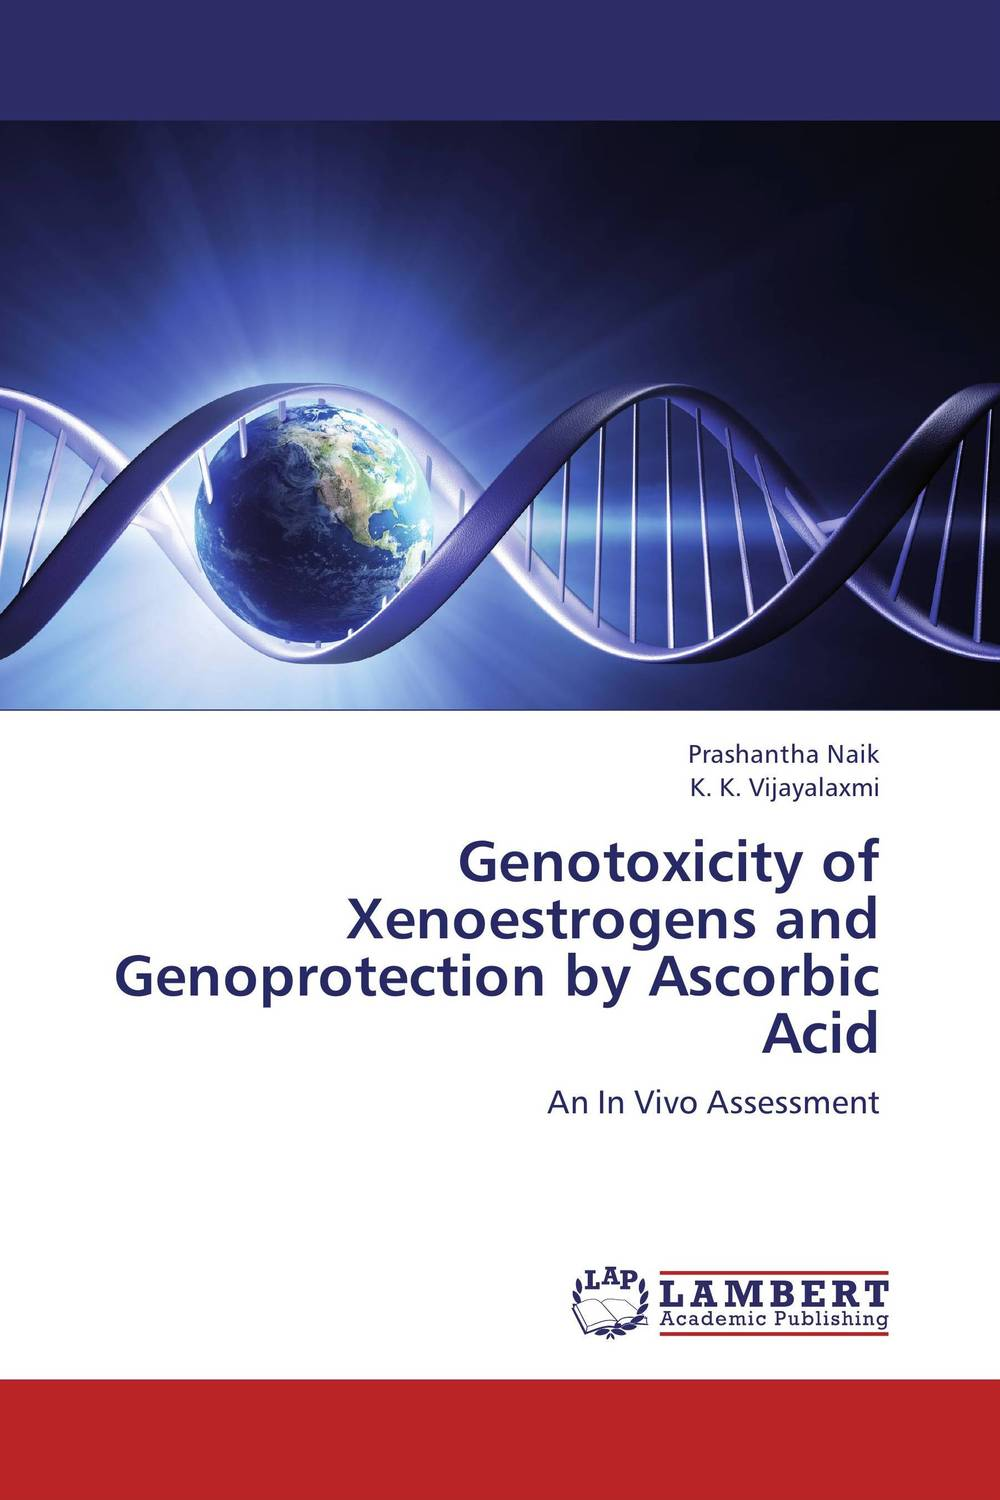 Genotoxicity of Xenoestrogens and Genoprotection by Ascorbic Acid effect of endocrine disruptors on the male reproductive system